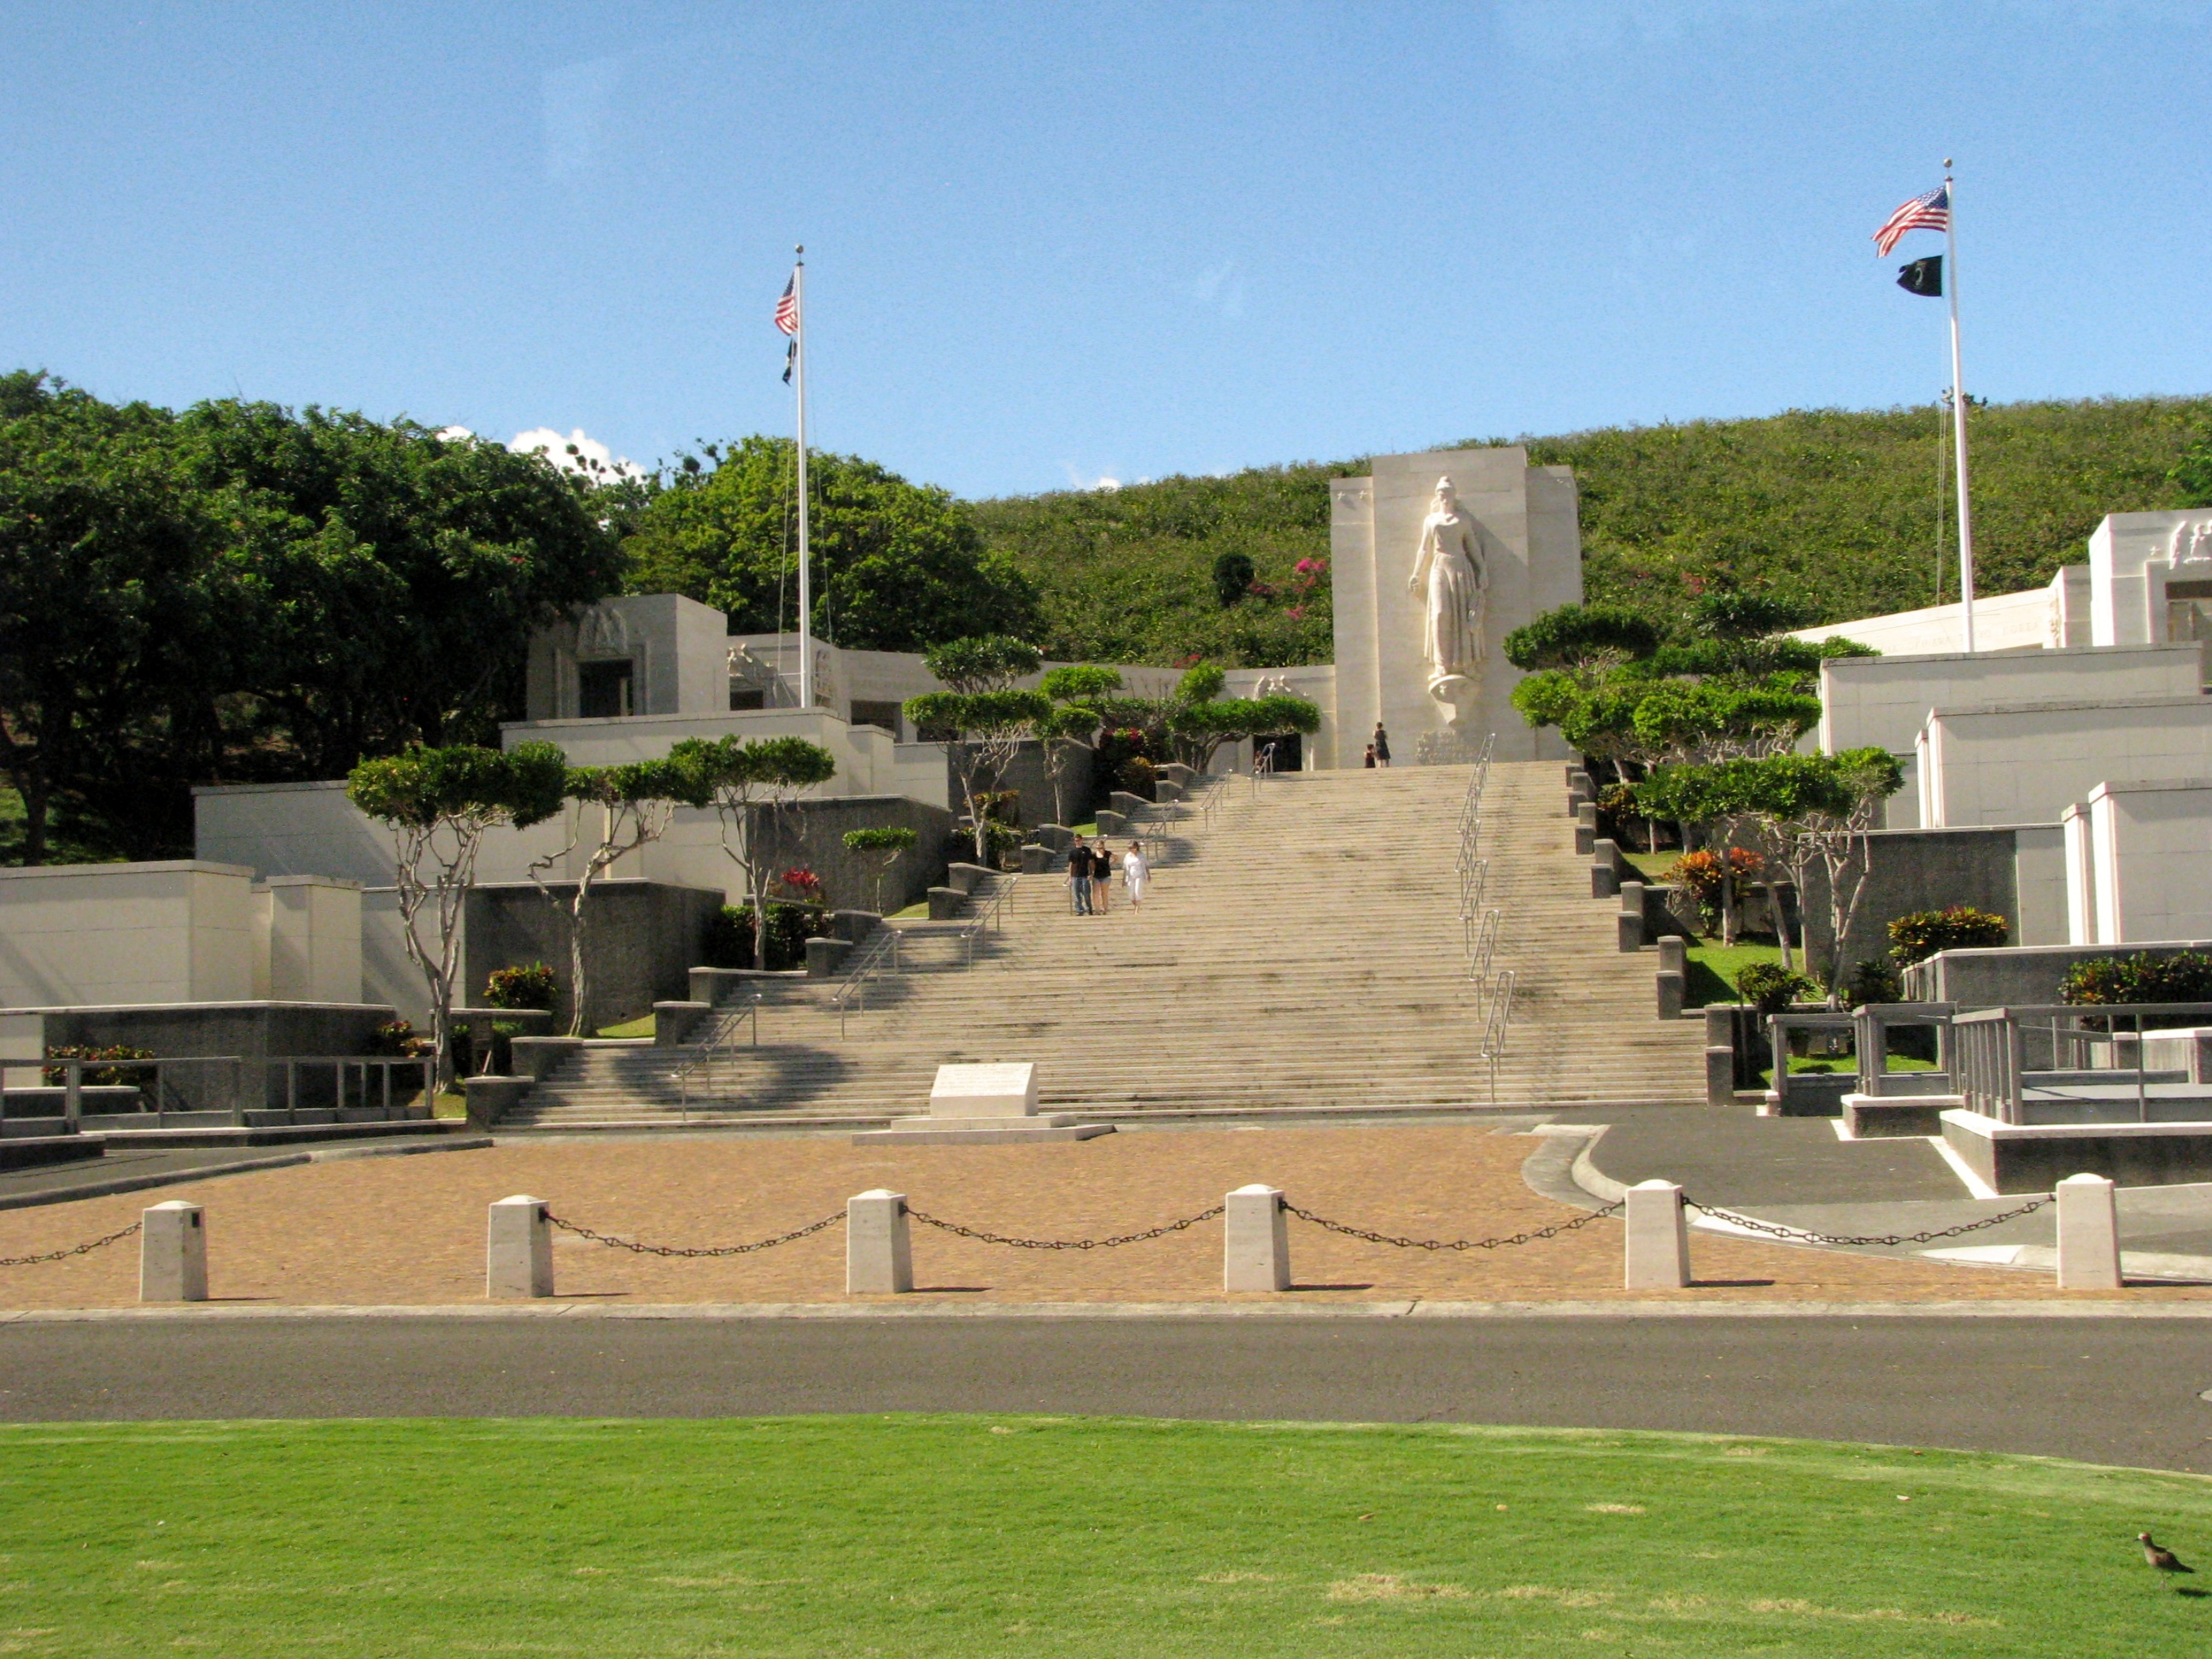 IN THESE GARDENS ARE RECORDED THE NAMES OF AMERICANS WHO GAVE THEIR LIVES IN THE SERVICE OF THEIR COUNTRY AND WHOSE EARTHLY RESTING PLACE IS KNOWN ONLY TO GOD